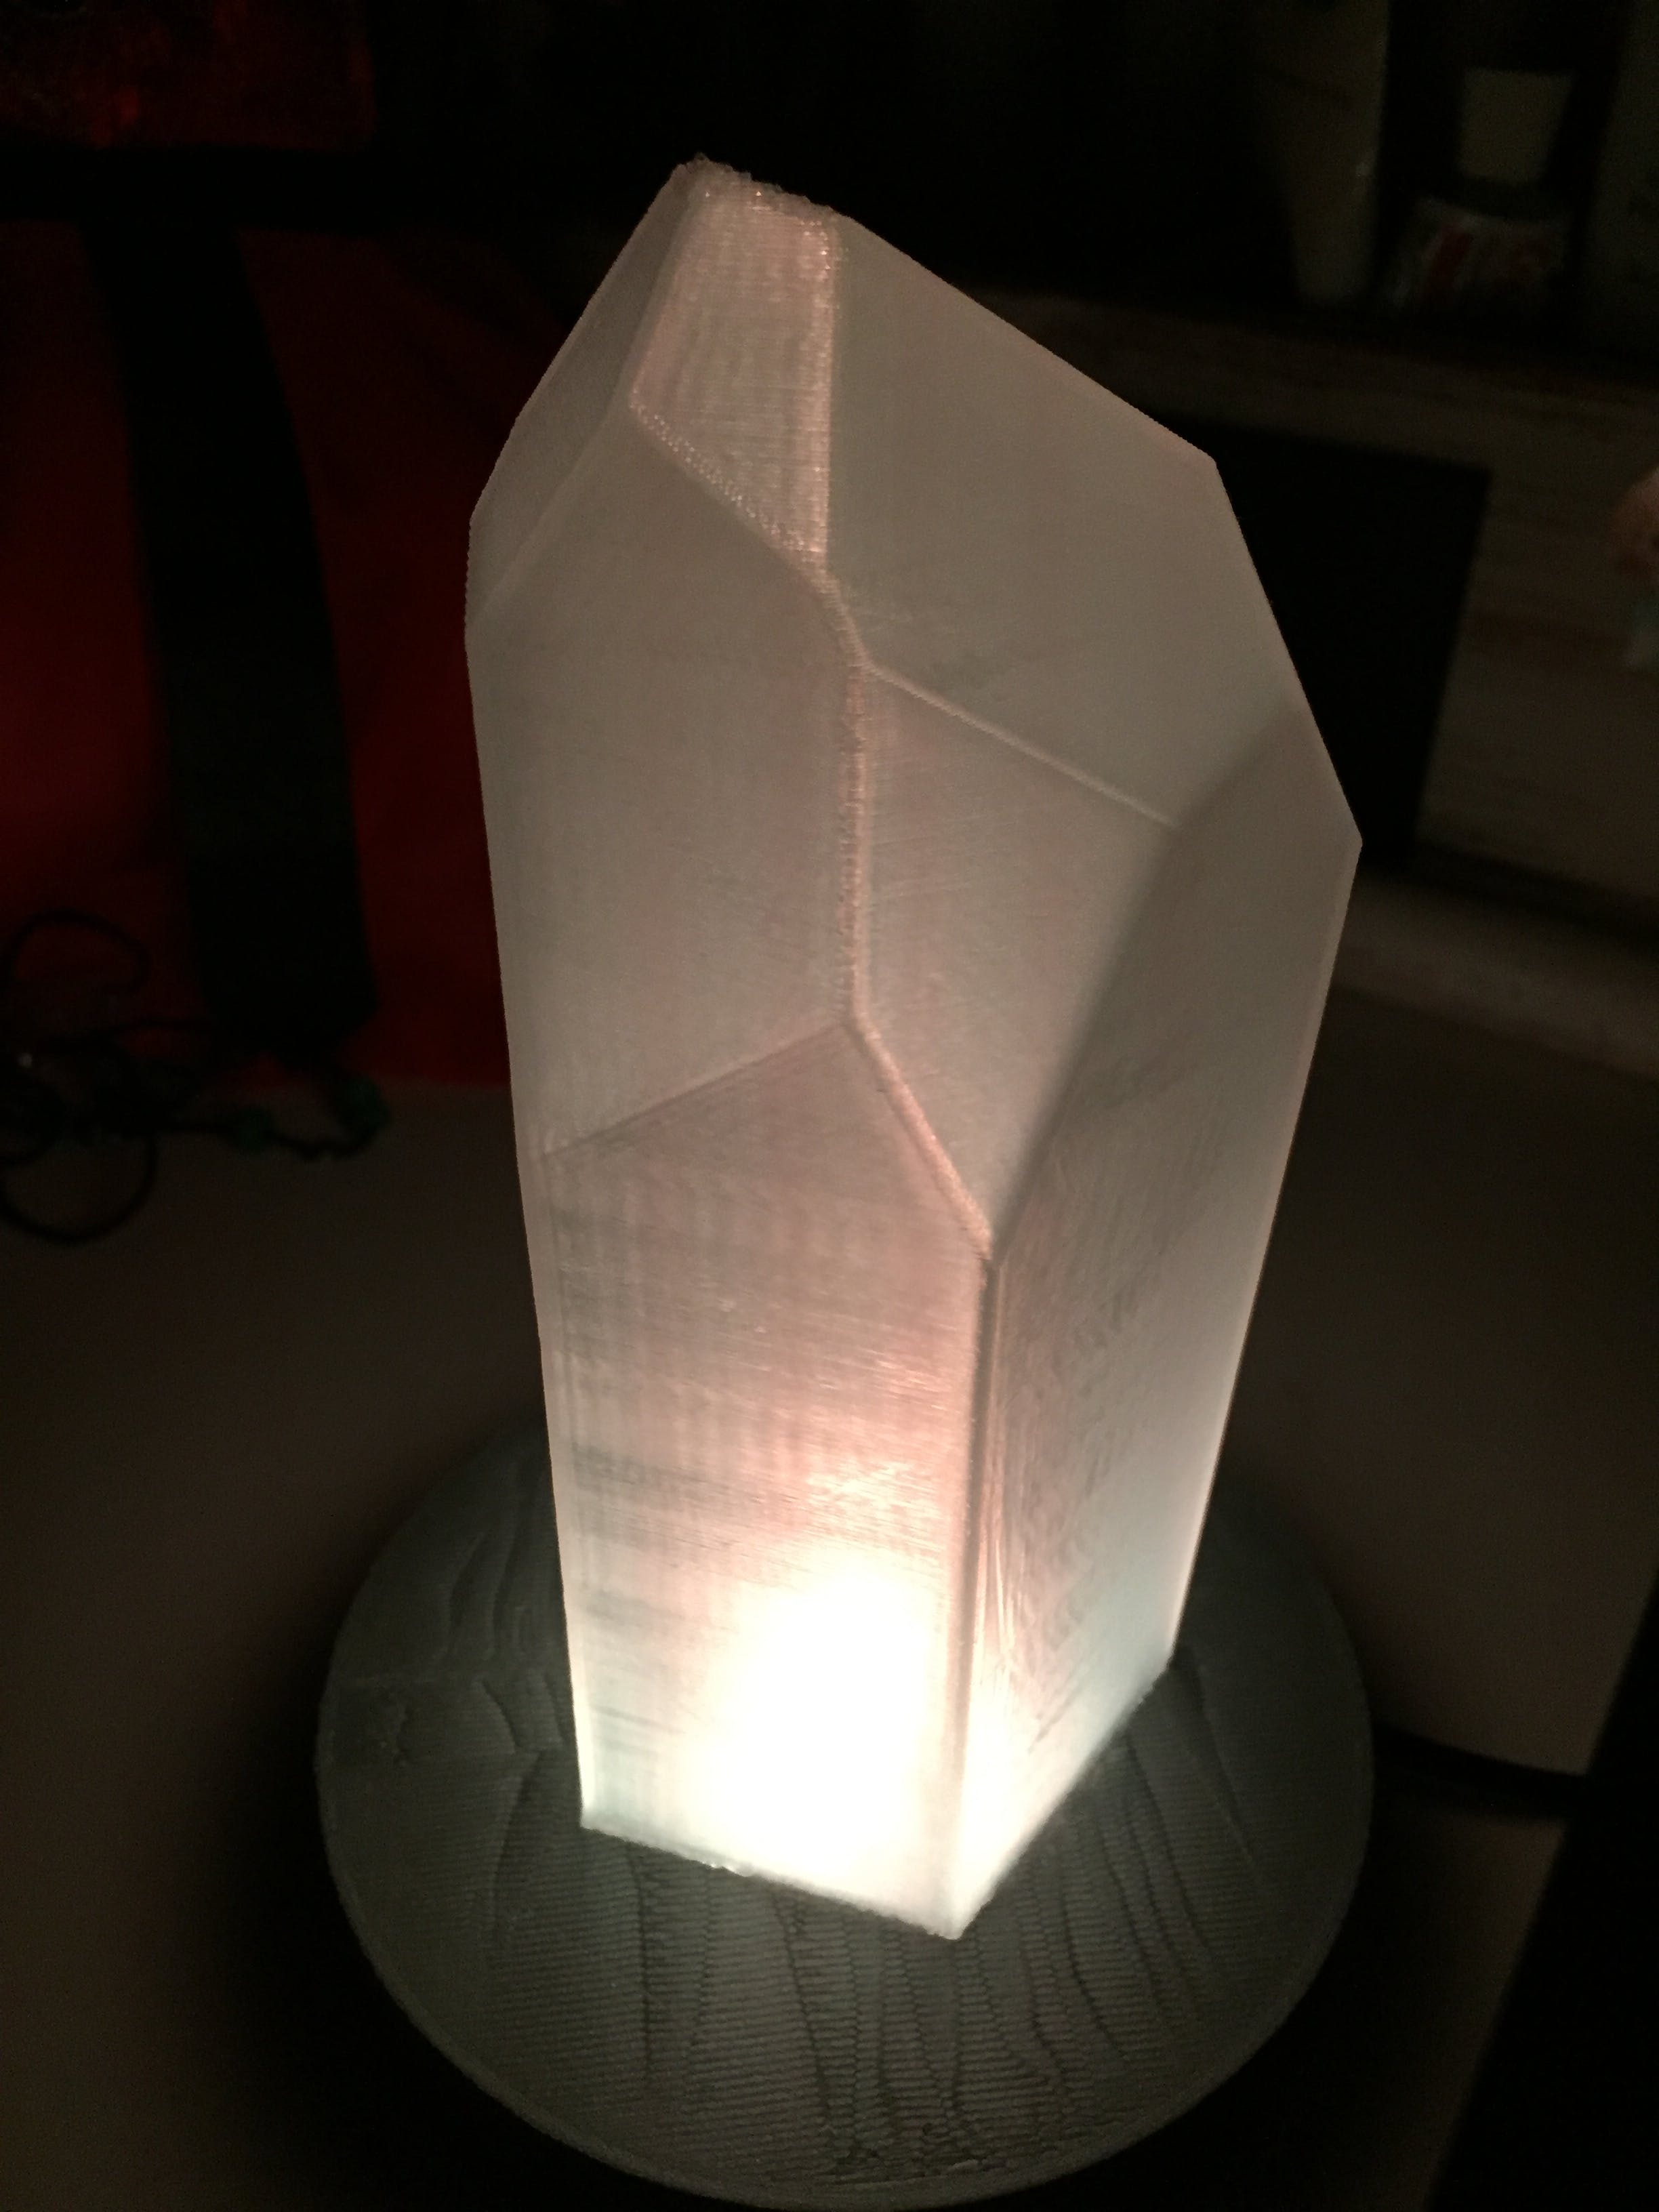 Quartz Crystal NeoPixel LED Candle for Particle Photon